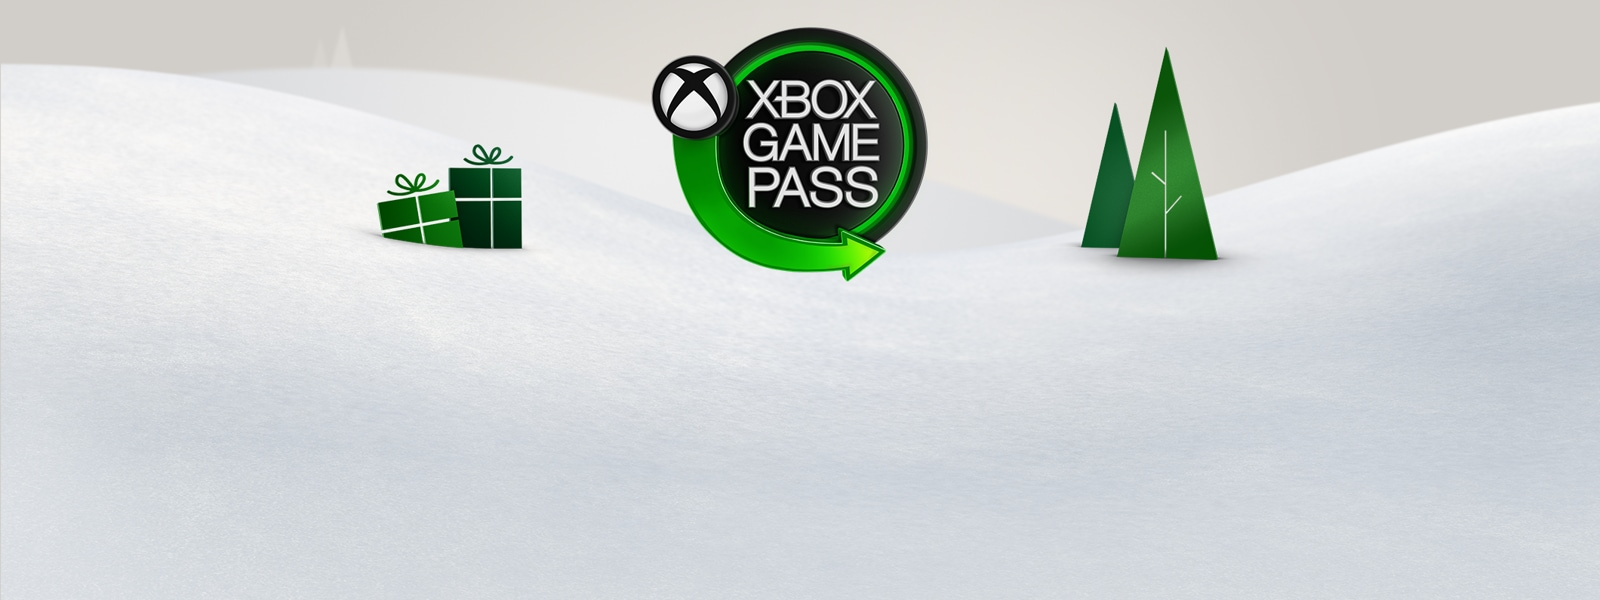 Le logo Xbox Game Pass